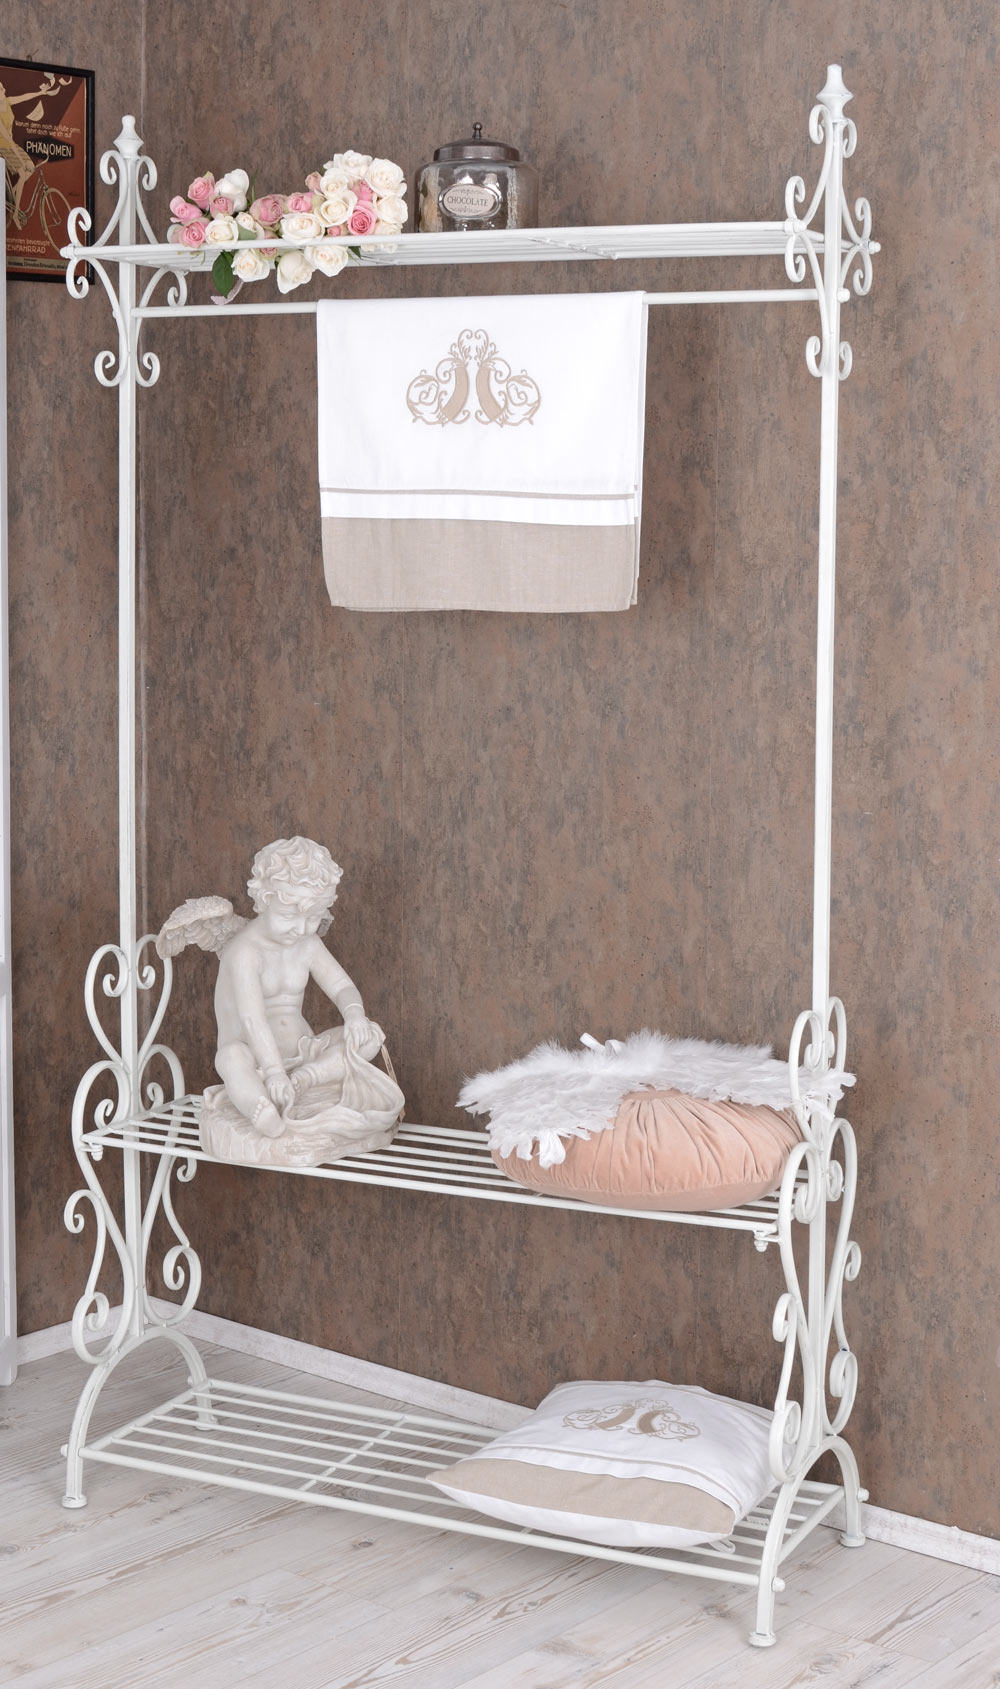 standgarderobe weiss metall garderobe shabby chic flurgarderobe kleiderst nder ebay. Black Bedroom Furniture Sets. Home Design Ideas